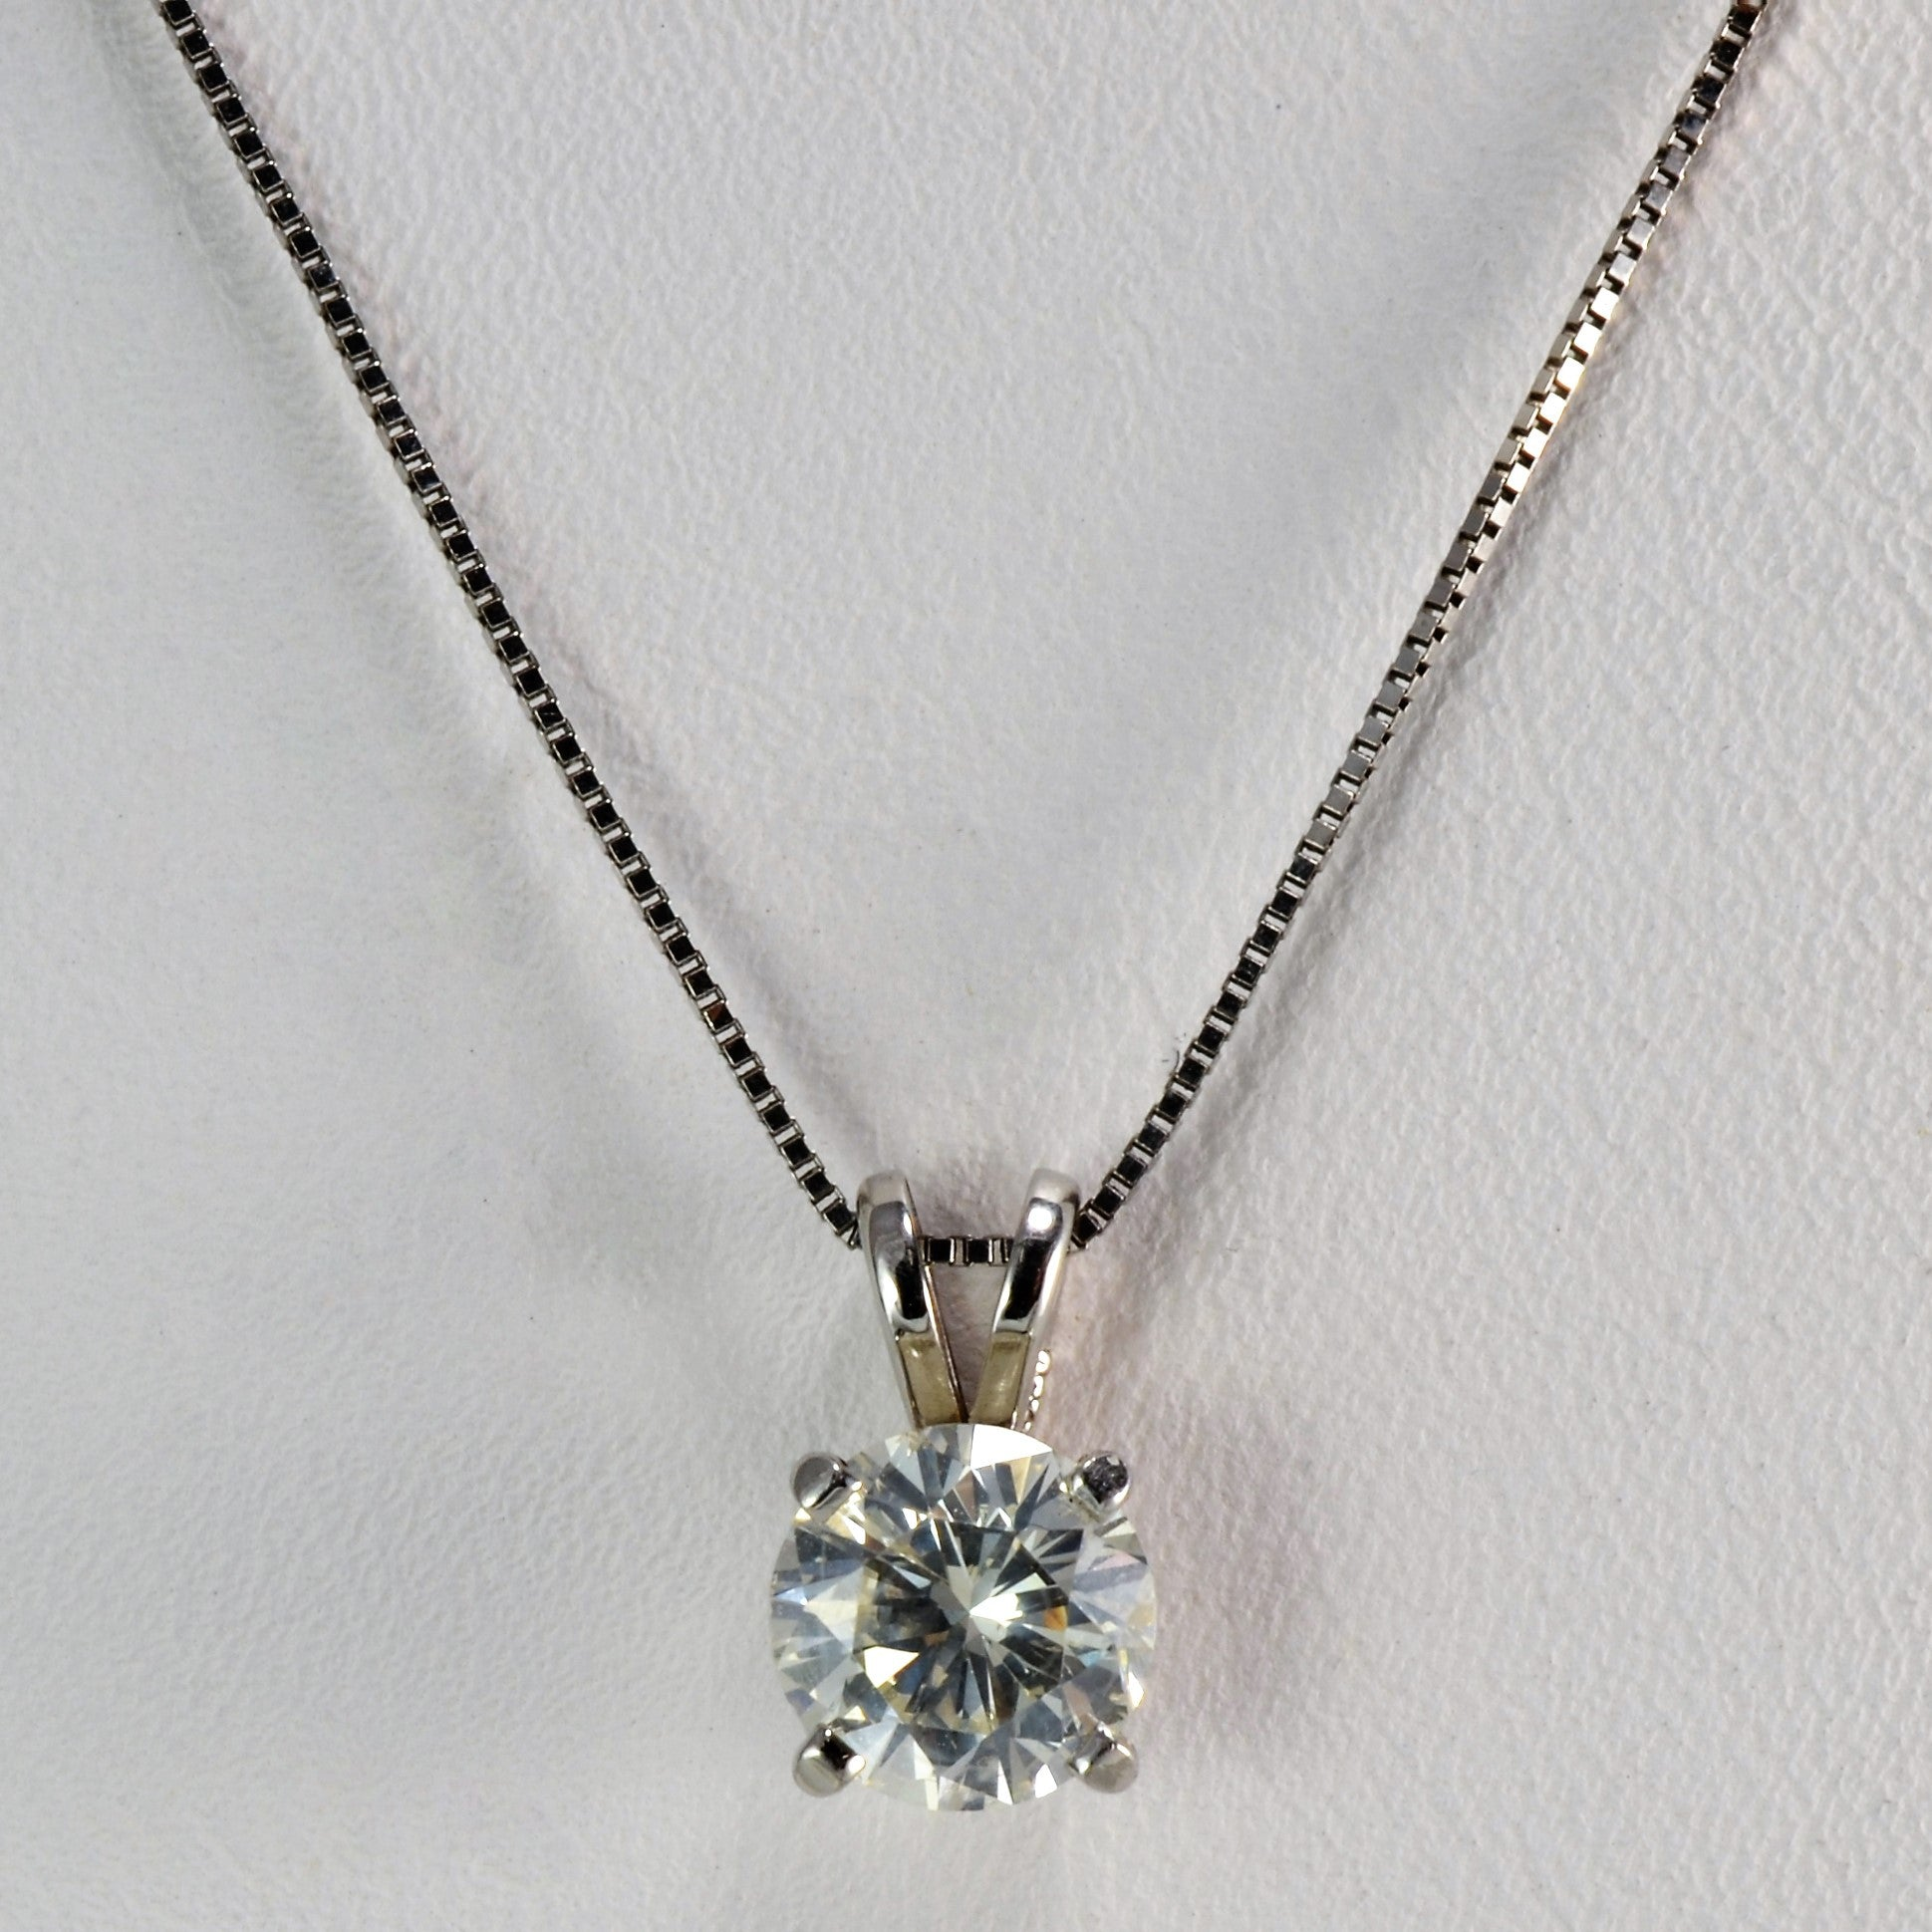 necklace athena gold full cybermonday white jewelry pom solitaire diamond necklaces